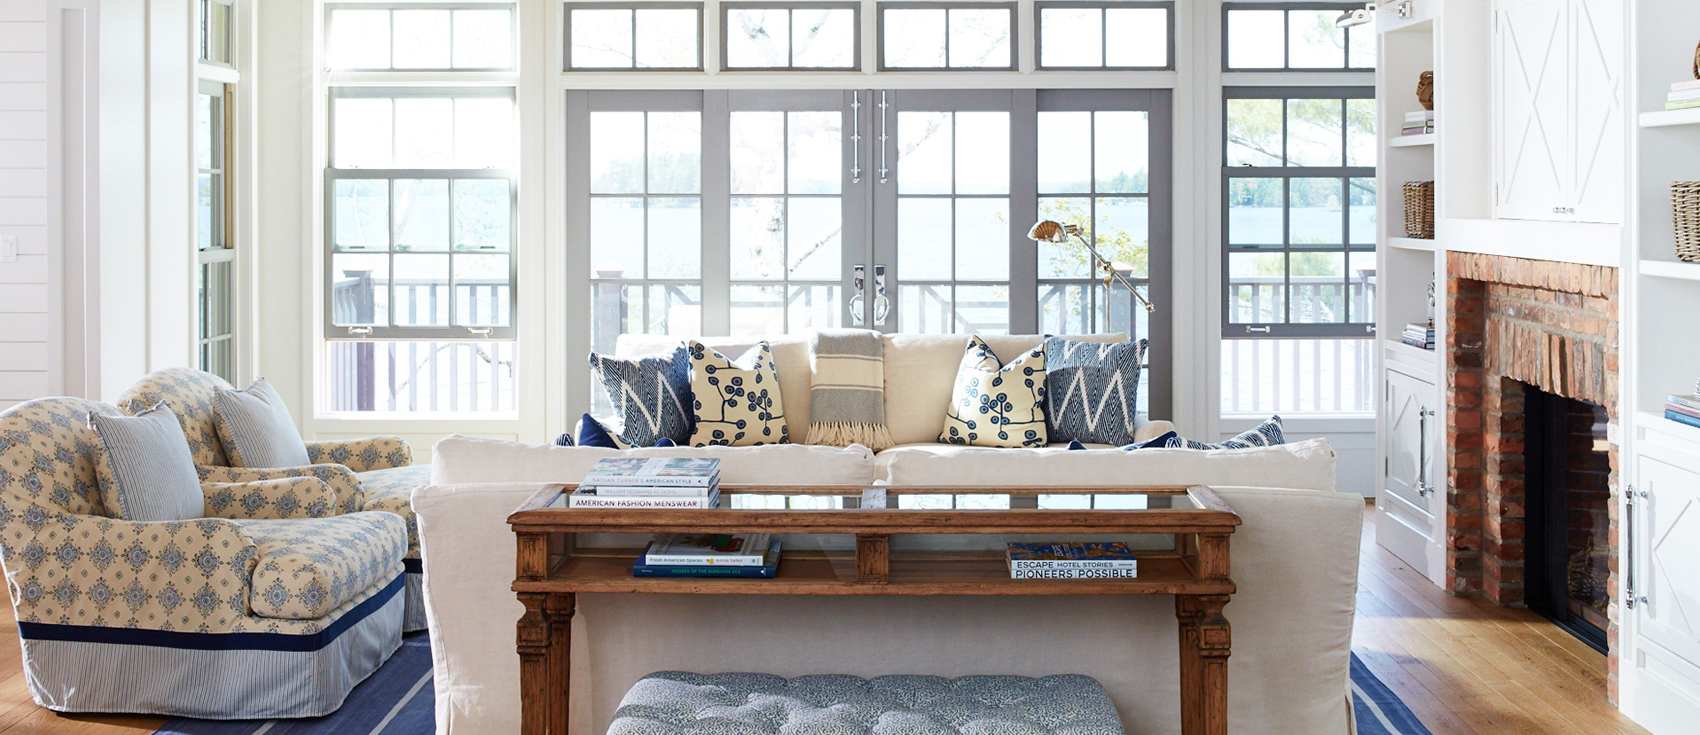 Coastal Decor | Coastal Decorating Ideas | Buyer Select